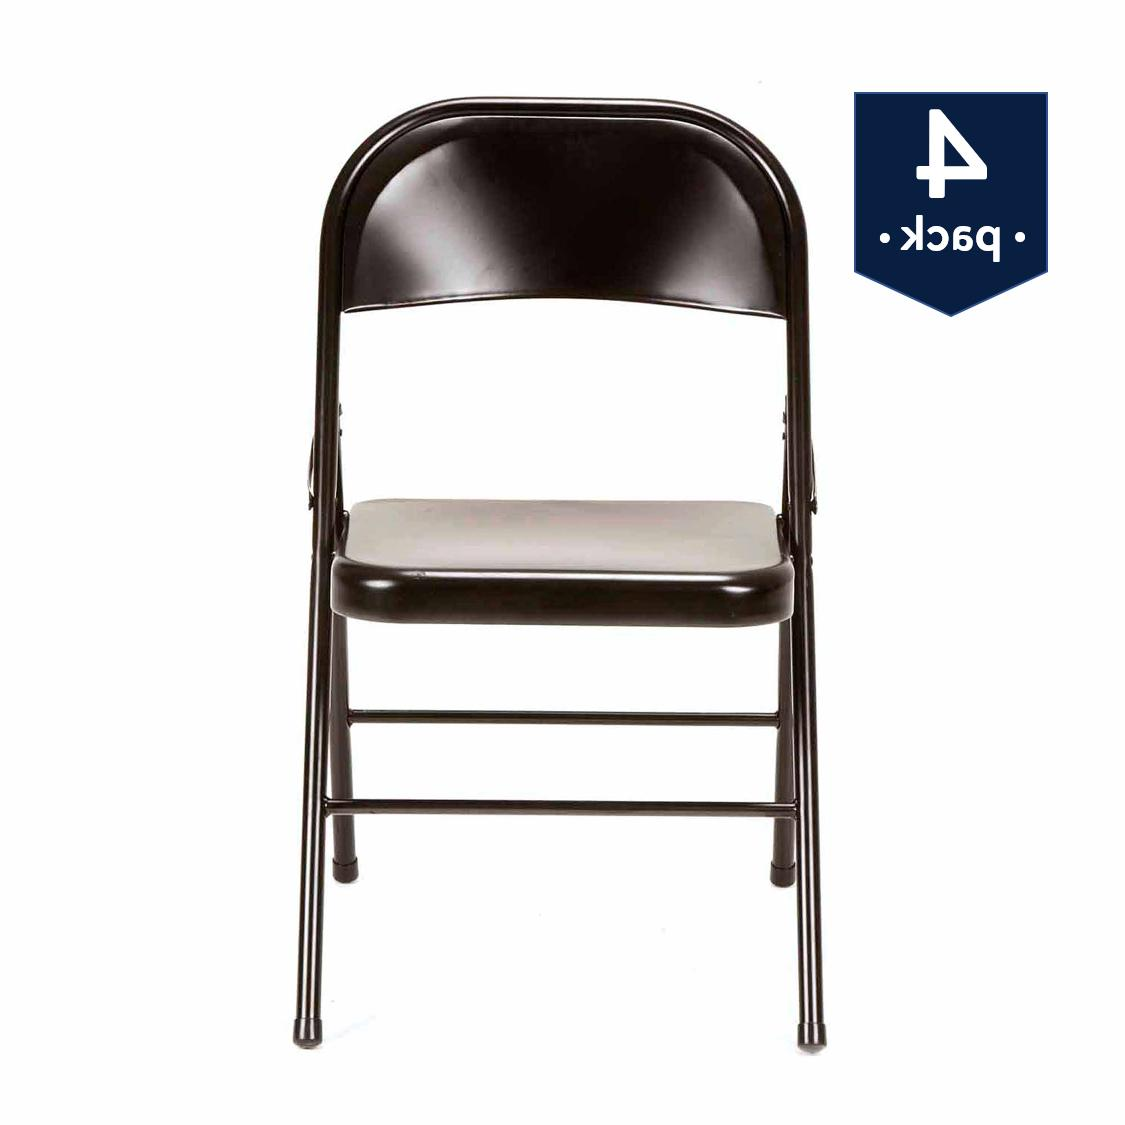 4 Chair Seat Portable Party Office NEW